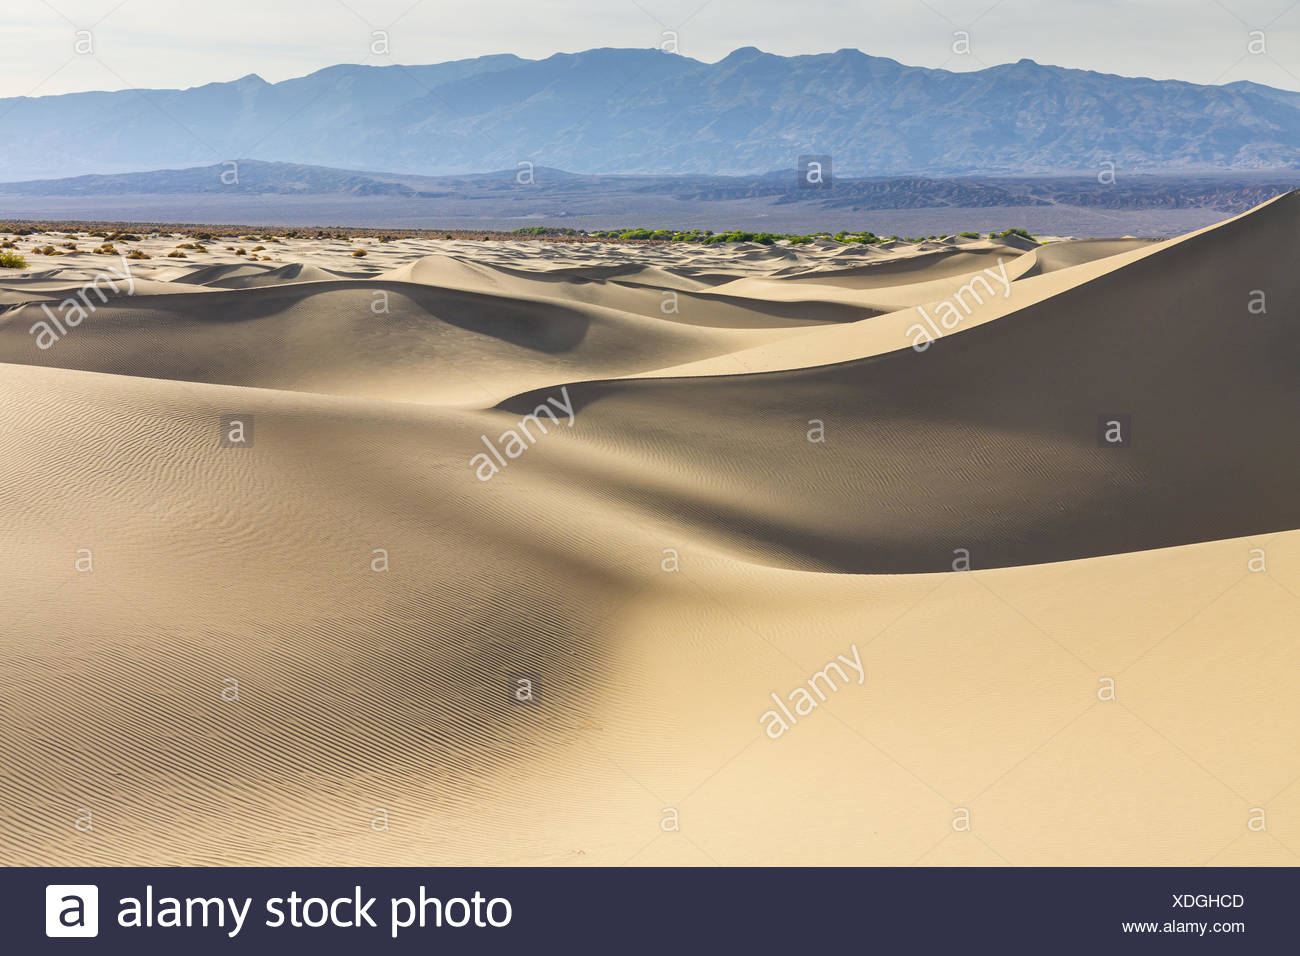 Mesquite Flat Sand Dunes, Death Valley National Park, California, USA, America. - Stock Image